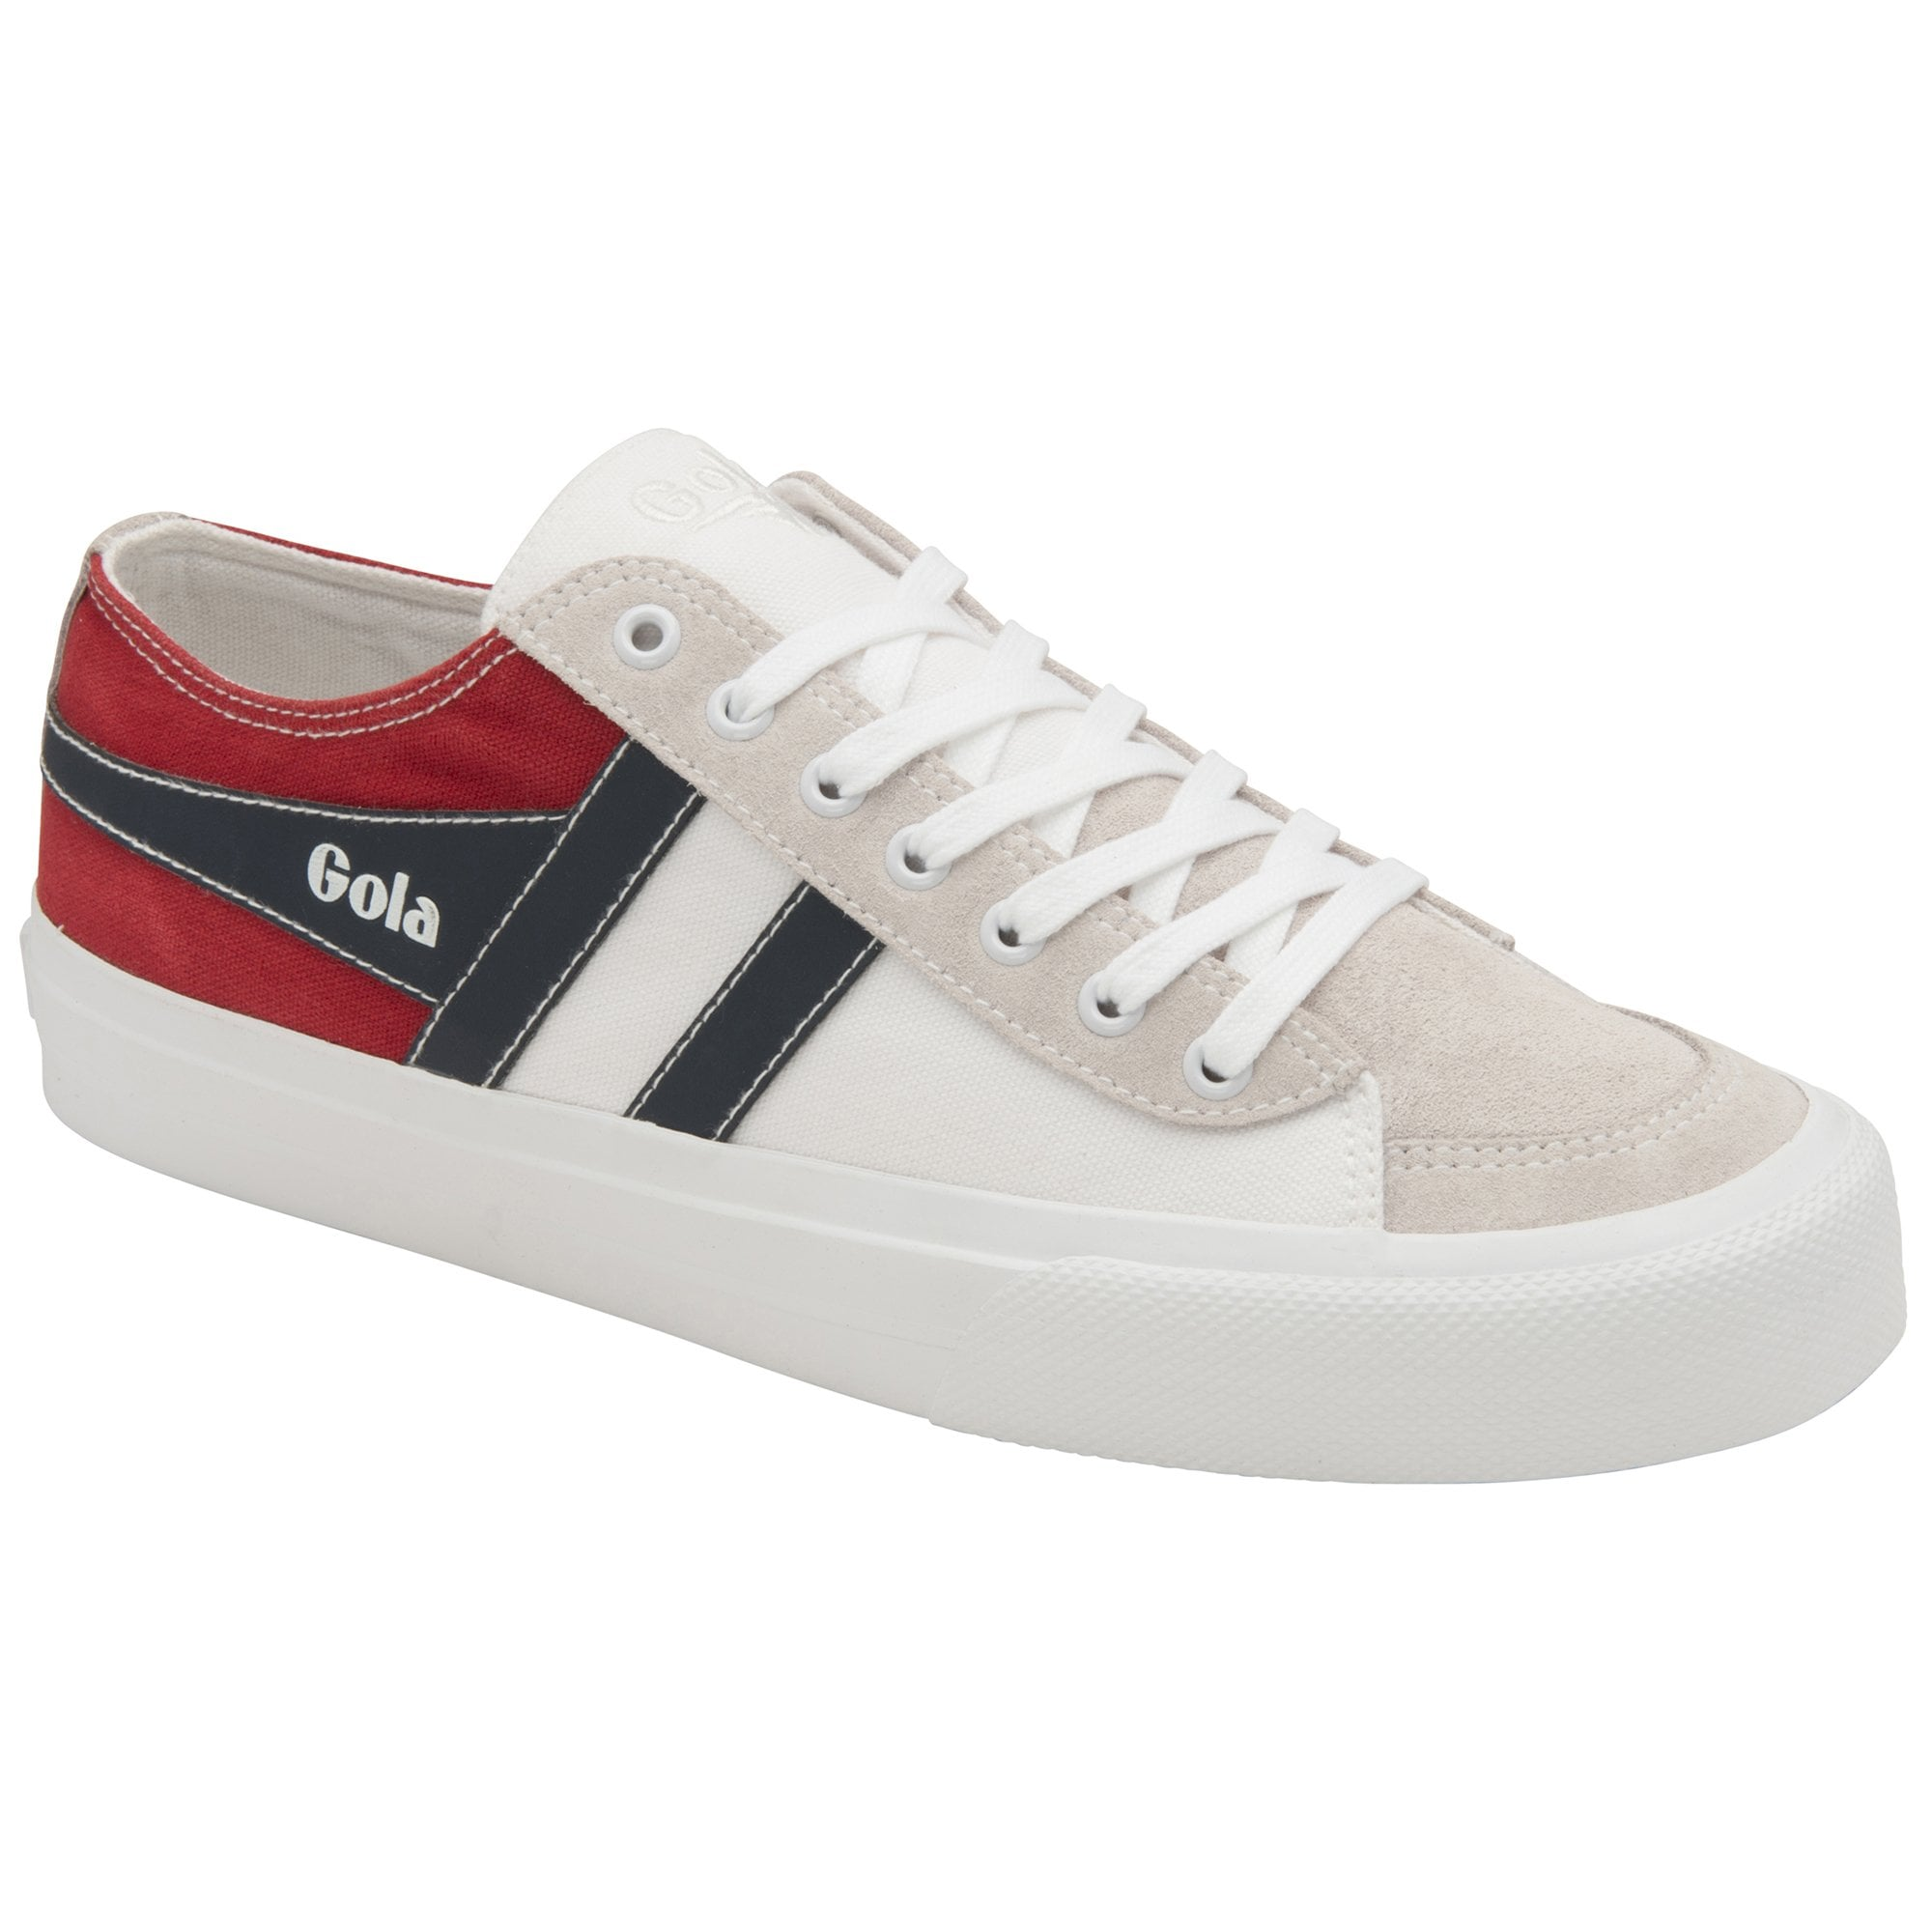 Men's Quota II RWB Plimsoll Sneakers